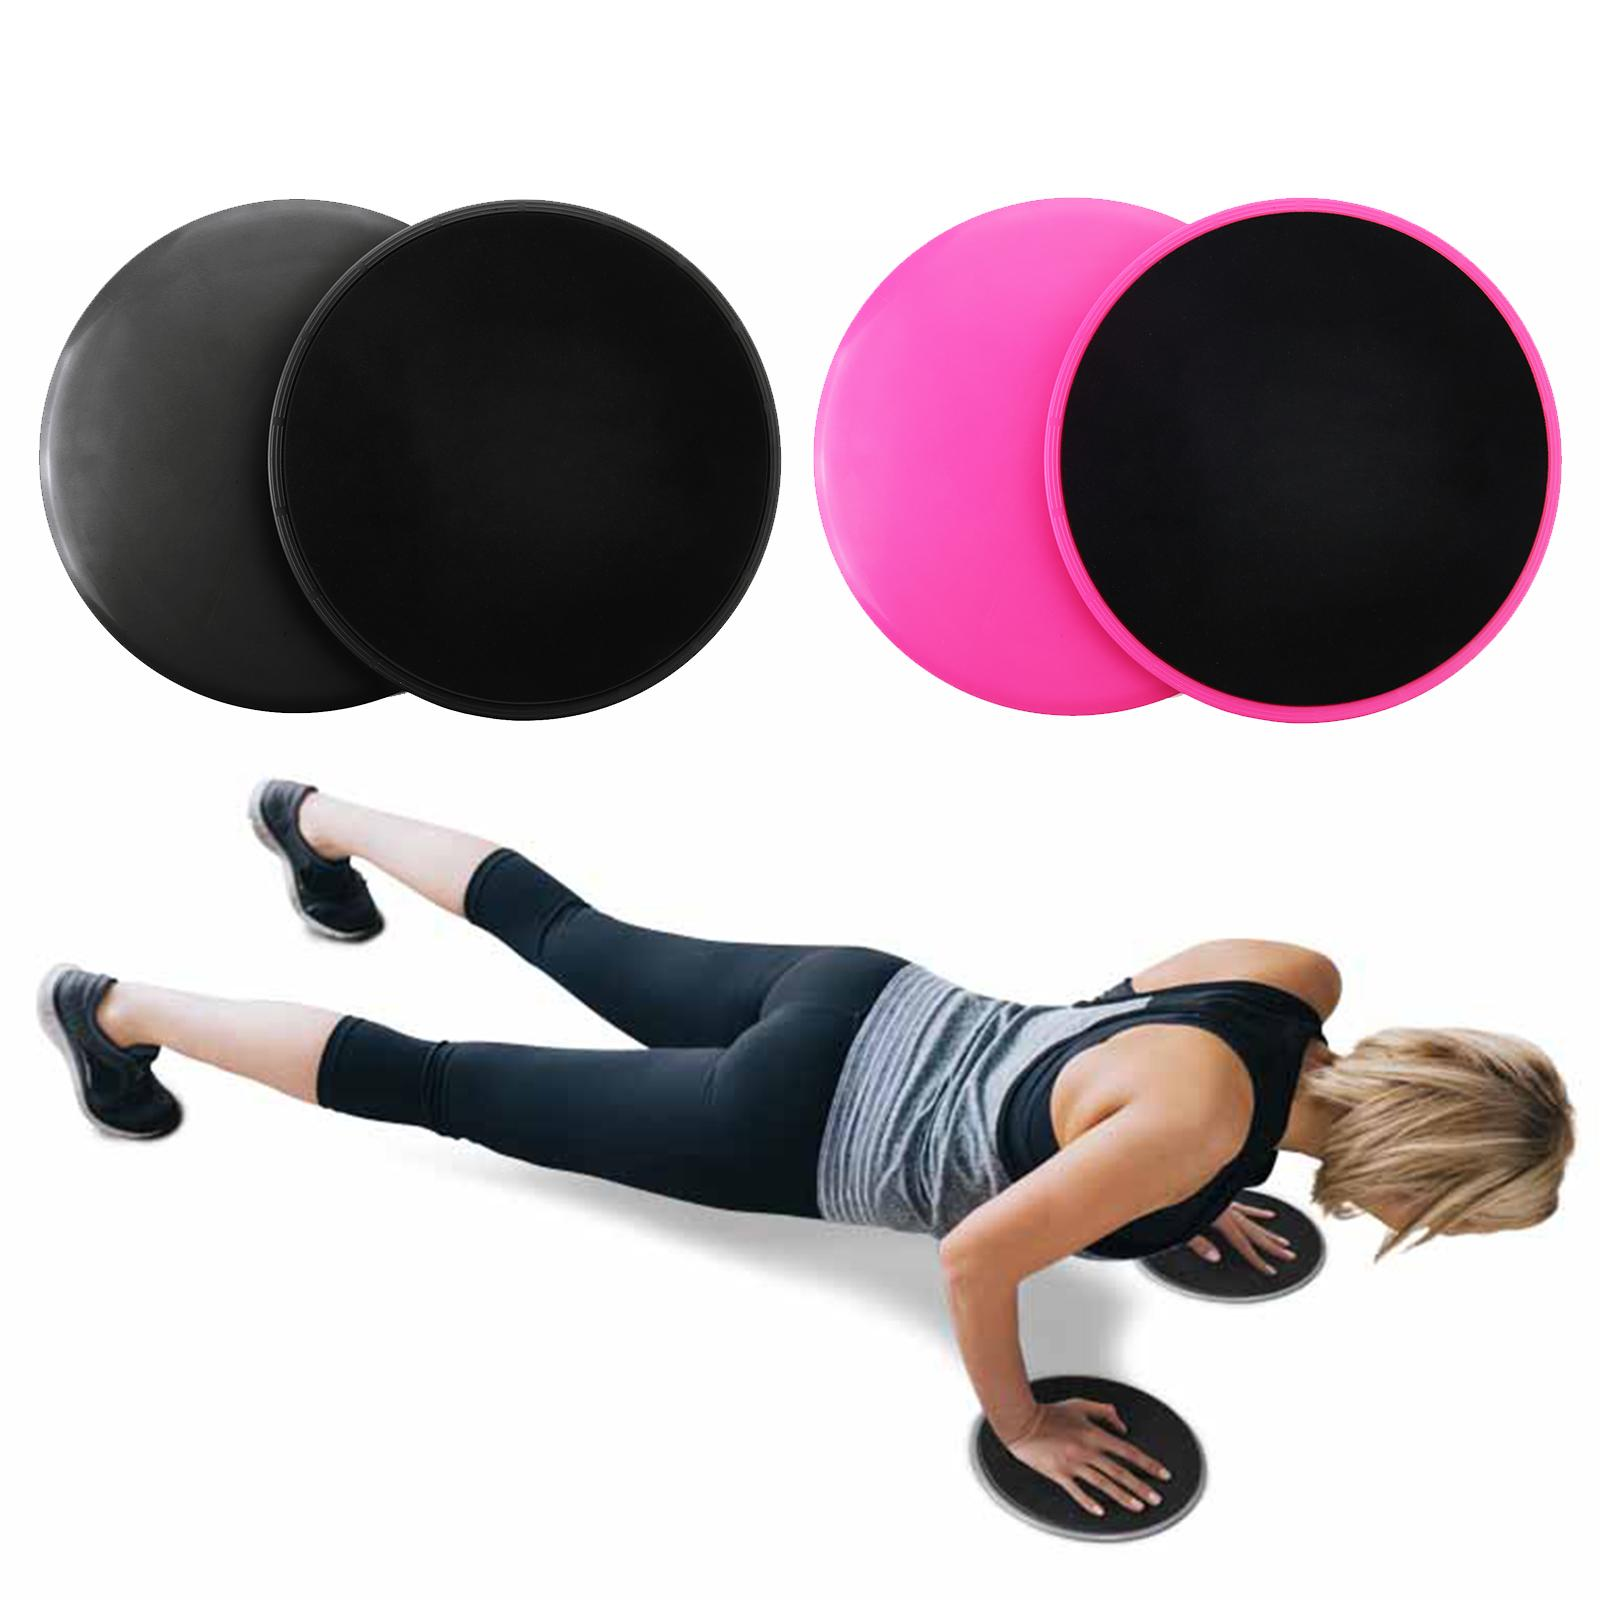 2x Fitness Gliding Discs Core Sliders Dual Sided Home Gym Abs Exercise Workouts